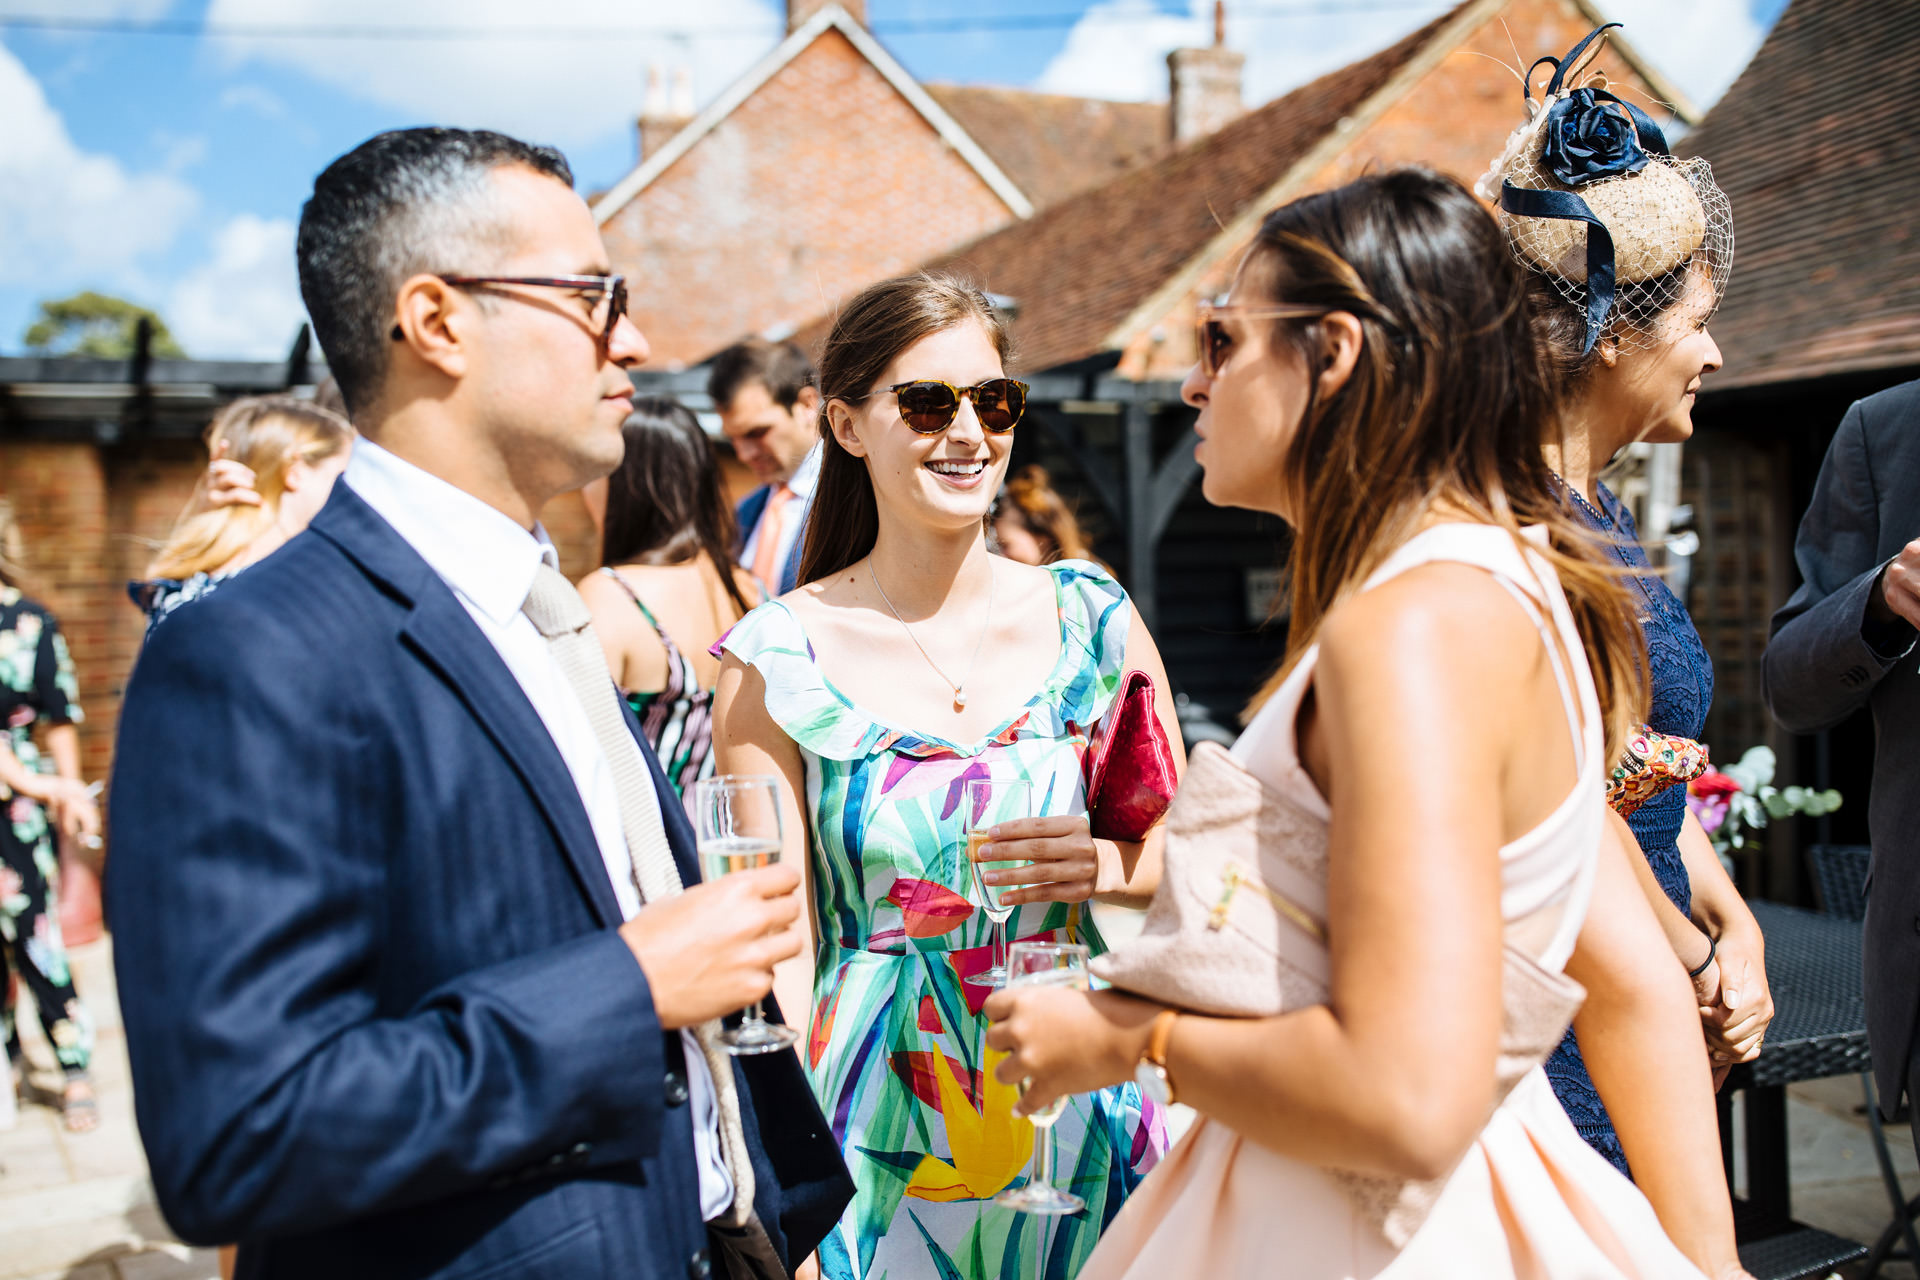 wedding guest with brown hair and sunglasses smiling